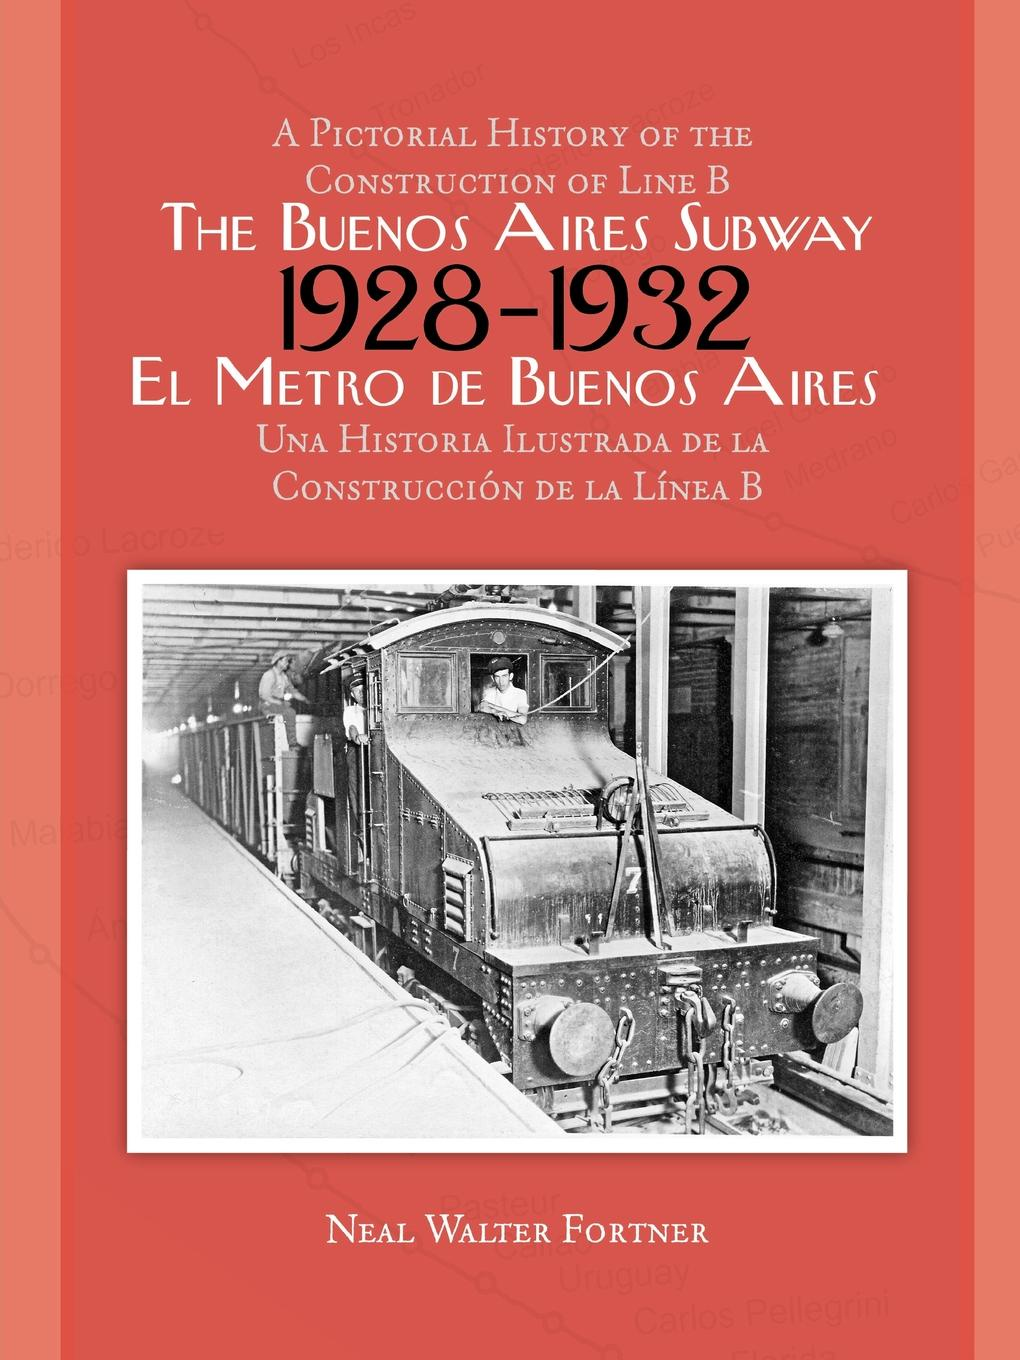 Neal Fortner The Buenos Aires Subway. A Pictorial History of the Construction of Line B, 1928 1932 la beriso buenos aires